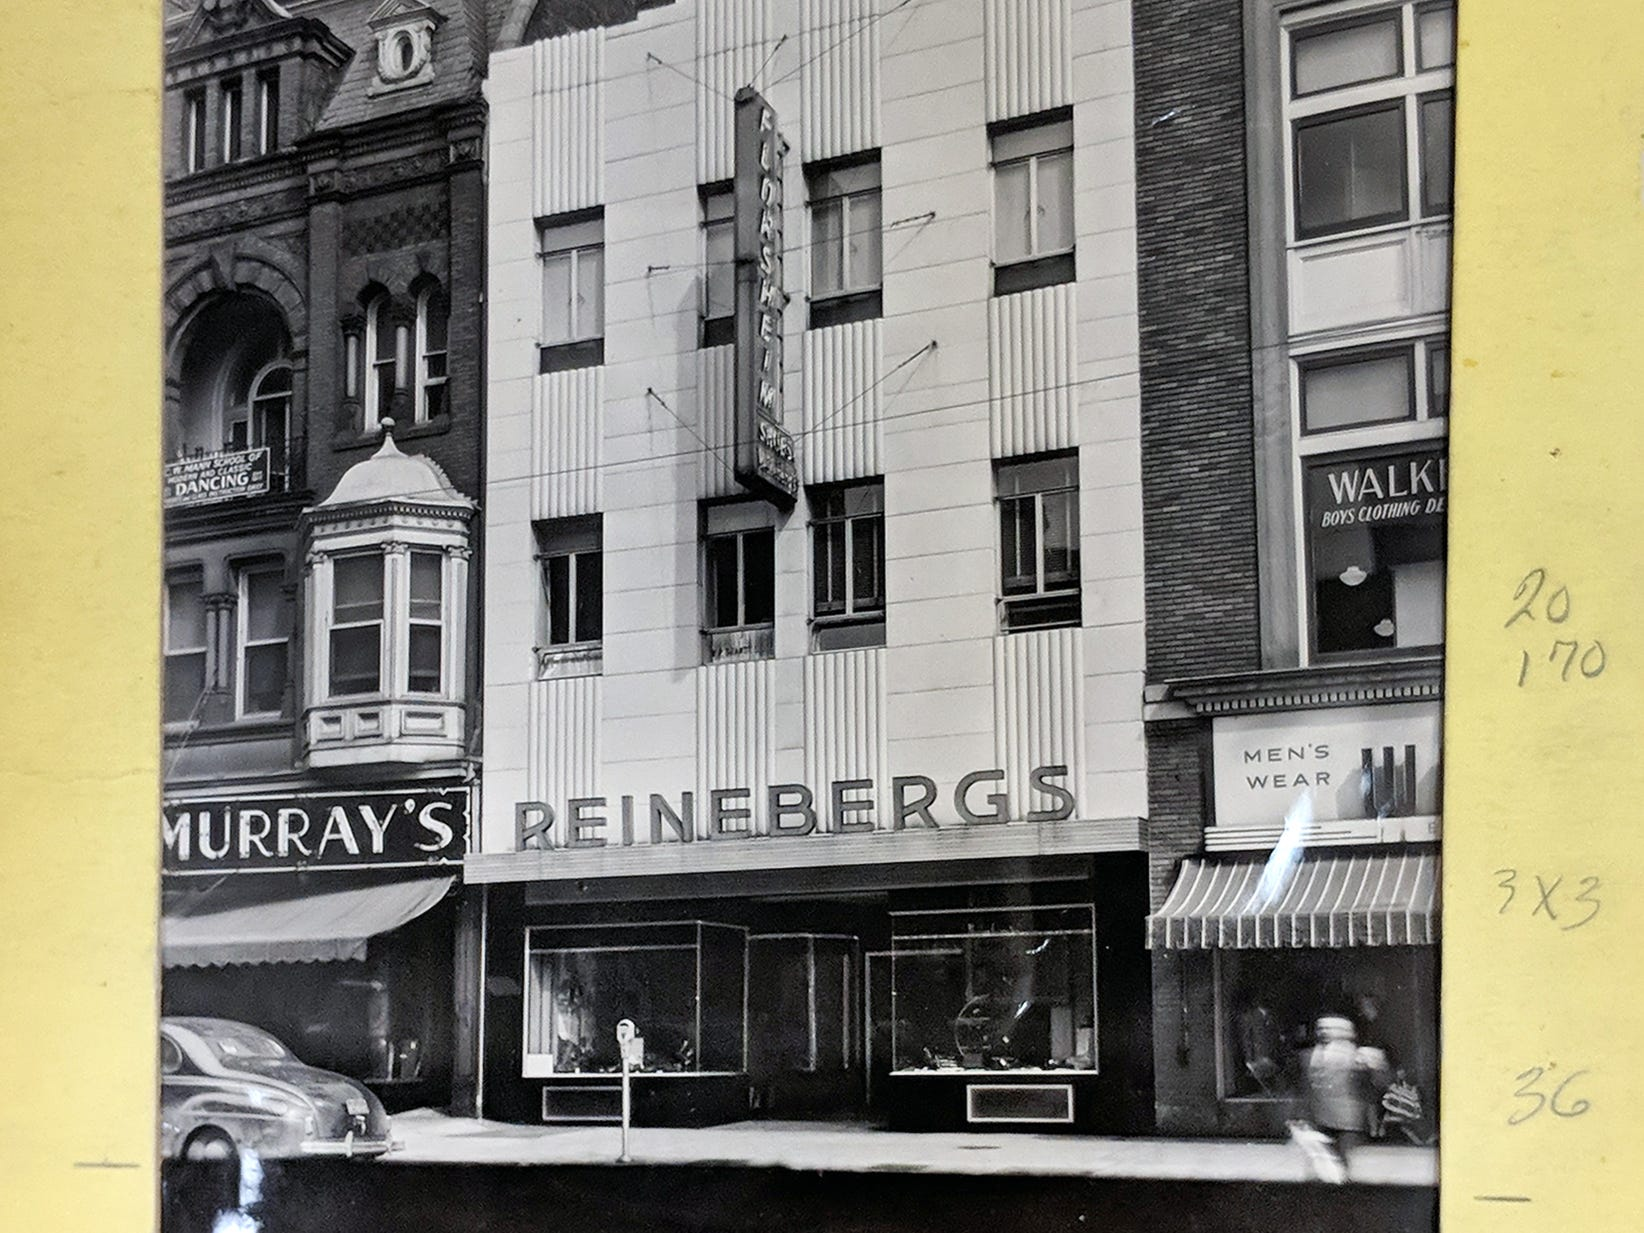 Reineberg's Shoe store in the new location in 1939.